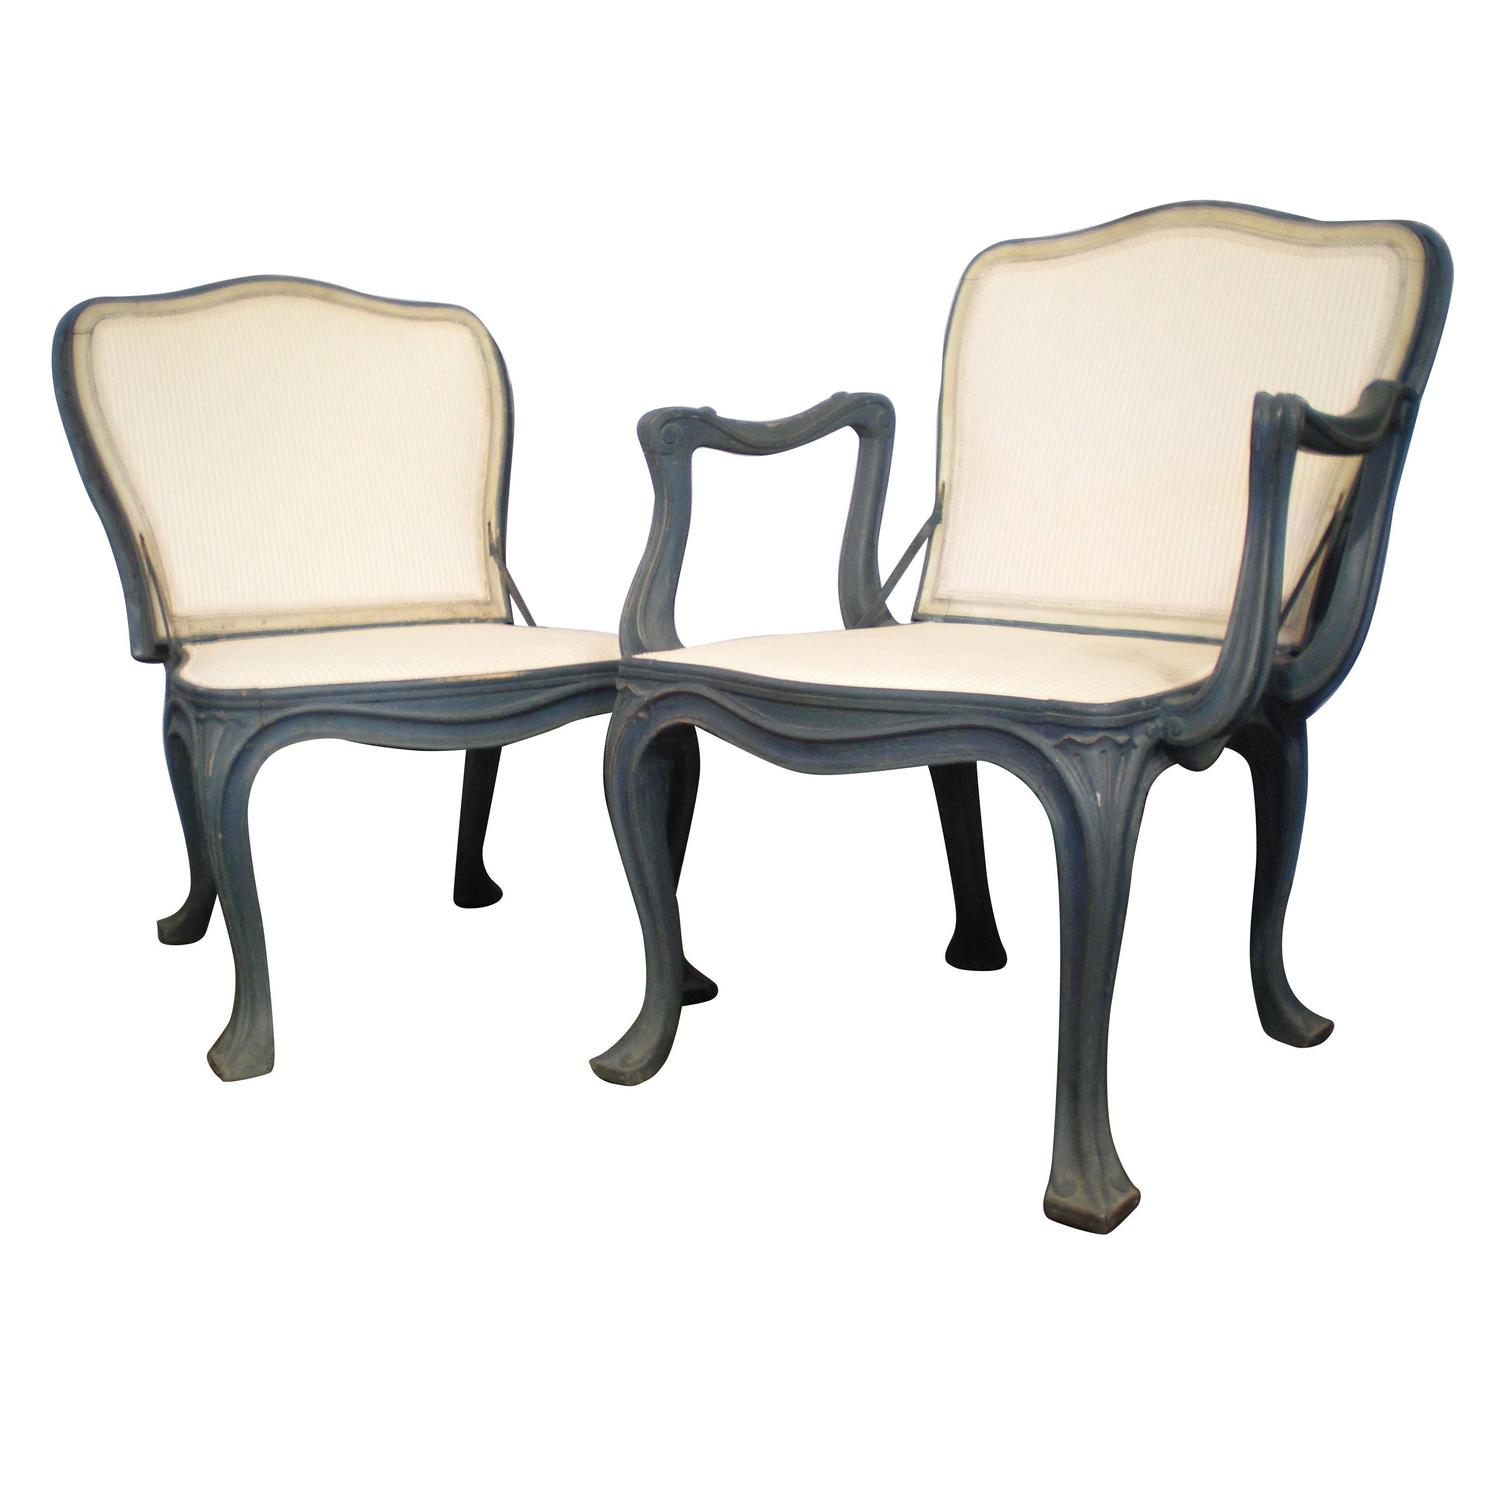 French Garden Chairs For Sale at 1stdibs